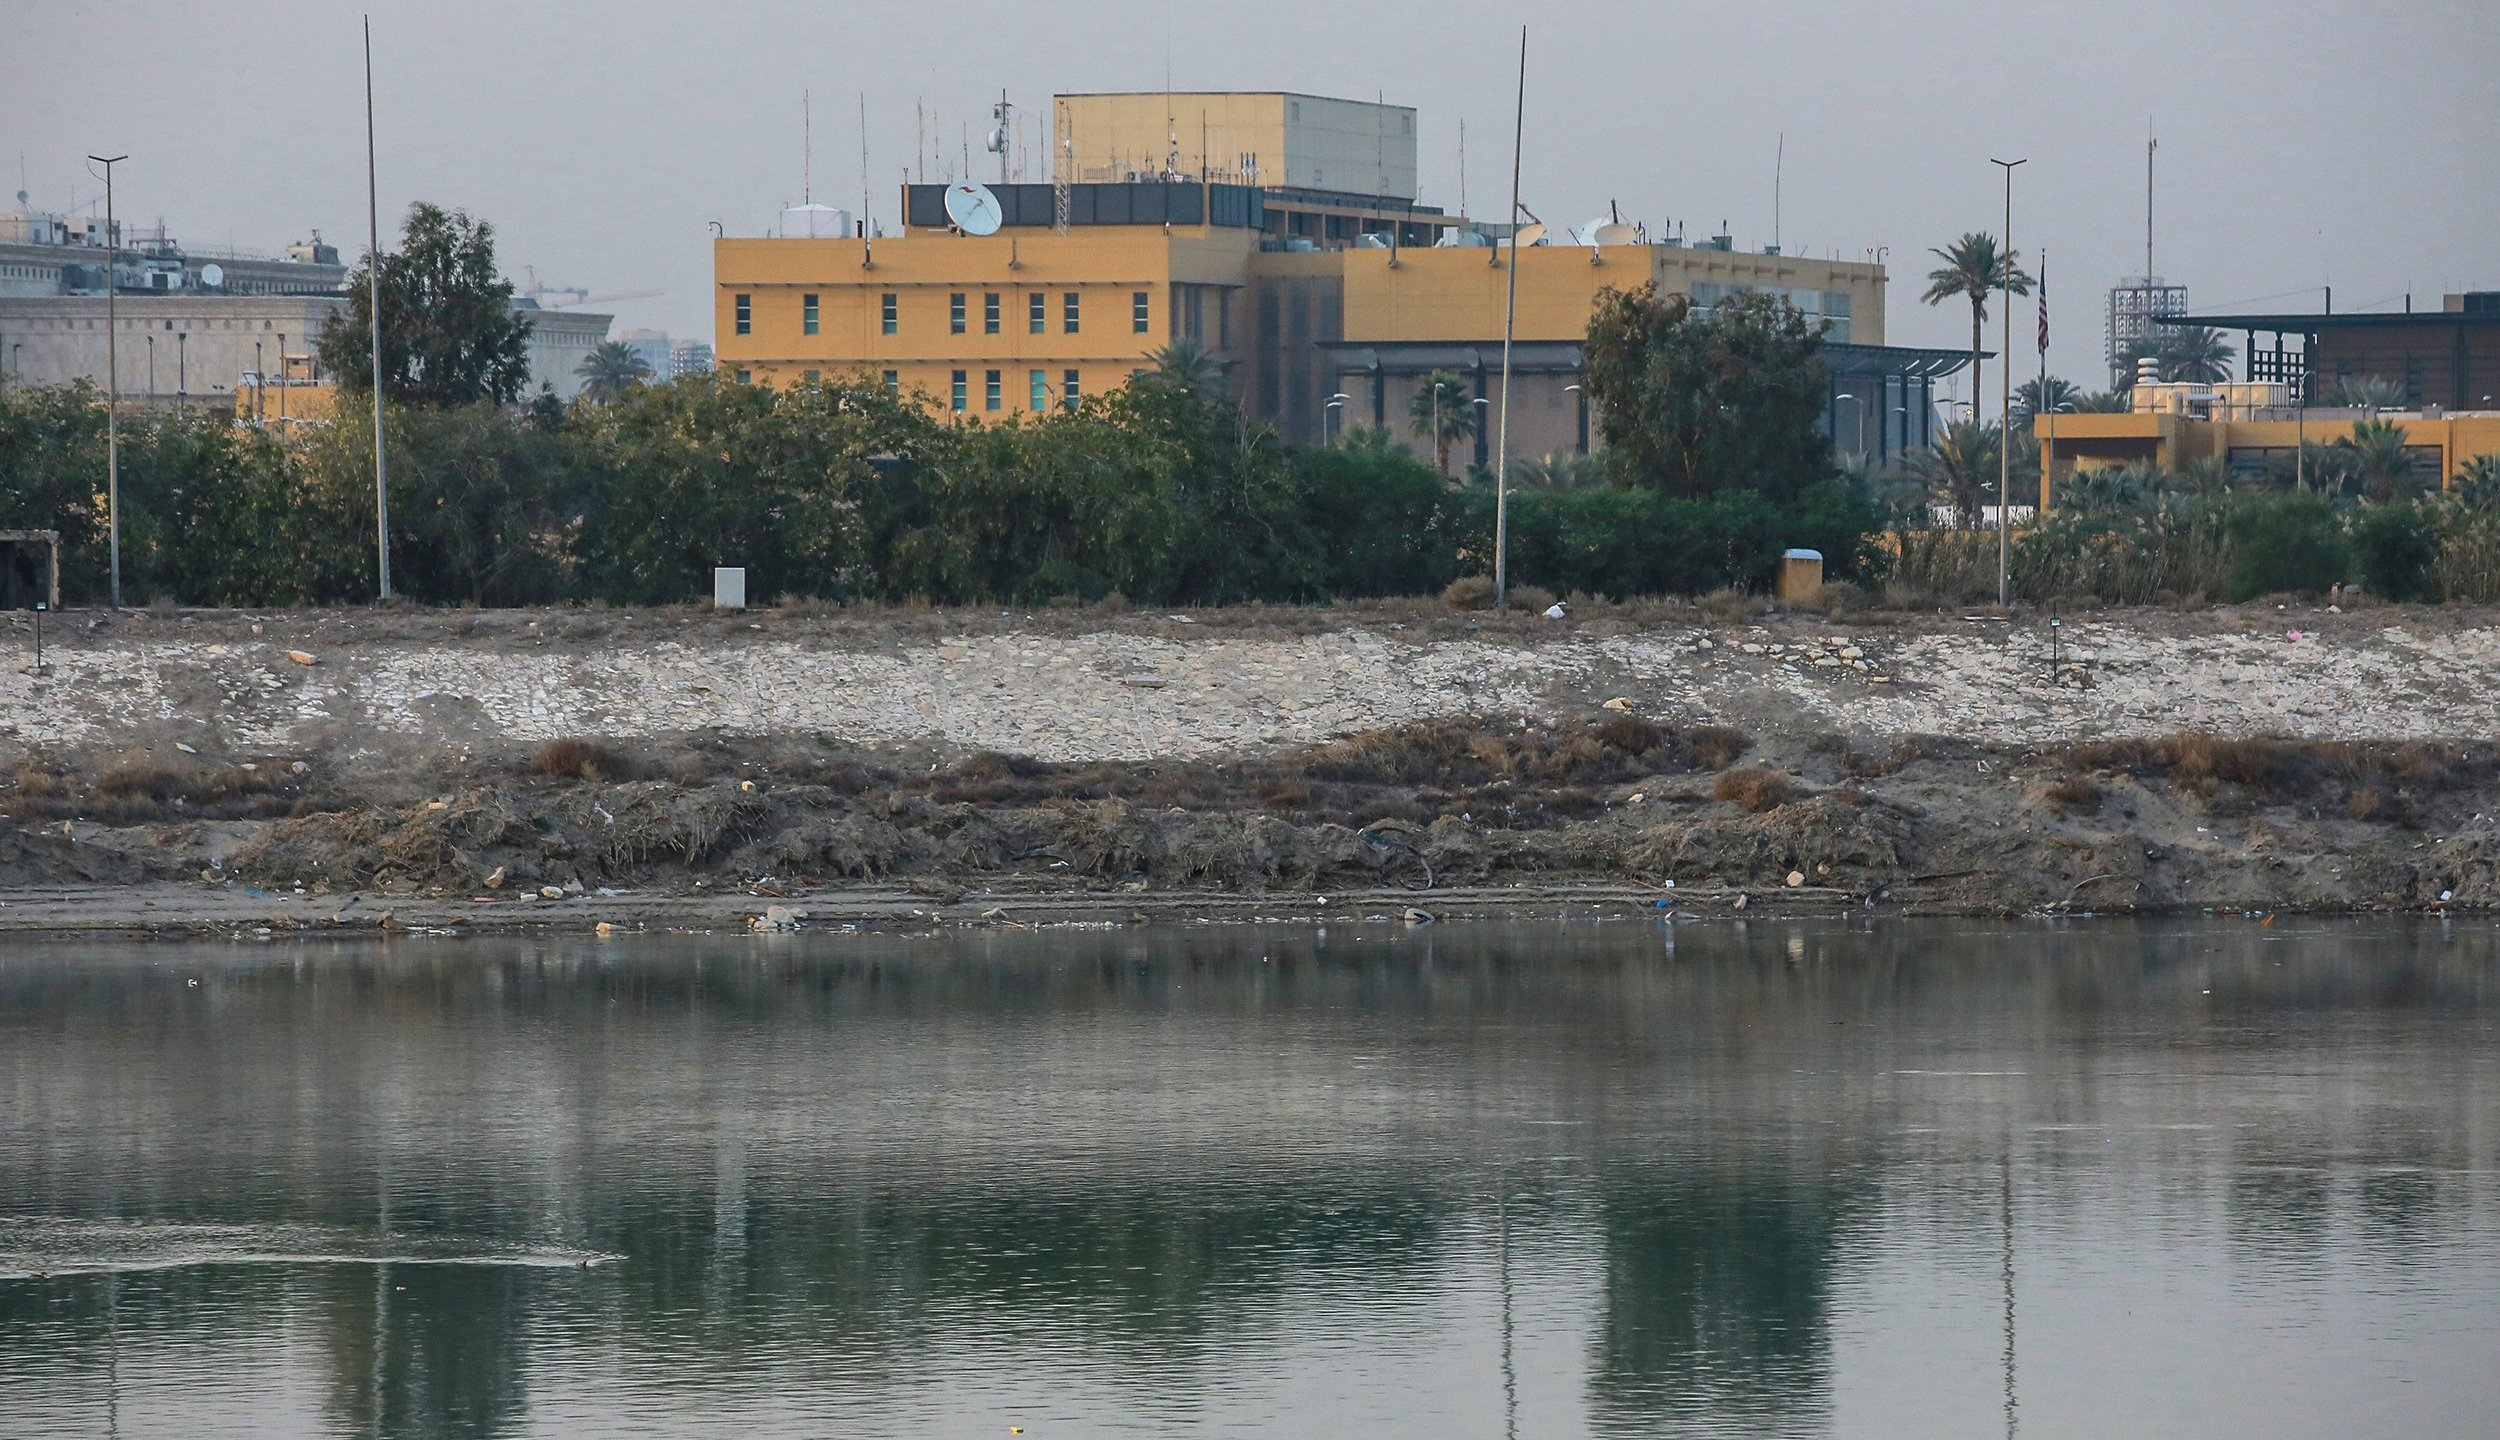 An undated photo of the US embassy compound on the banks of the Tigris River. (Credit: Ameer Al Mohmmedaw/picture alliance via Getty Images)